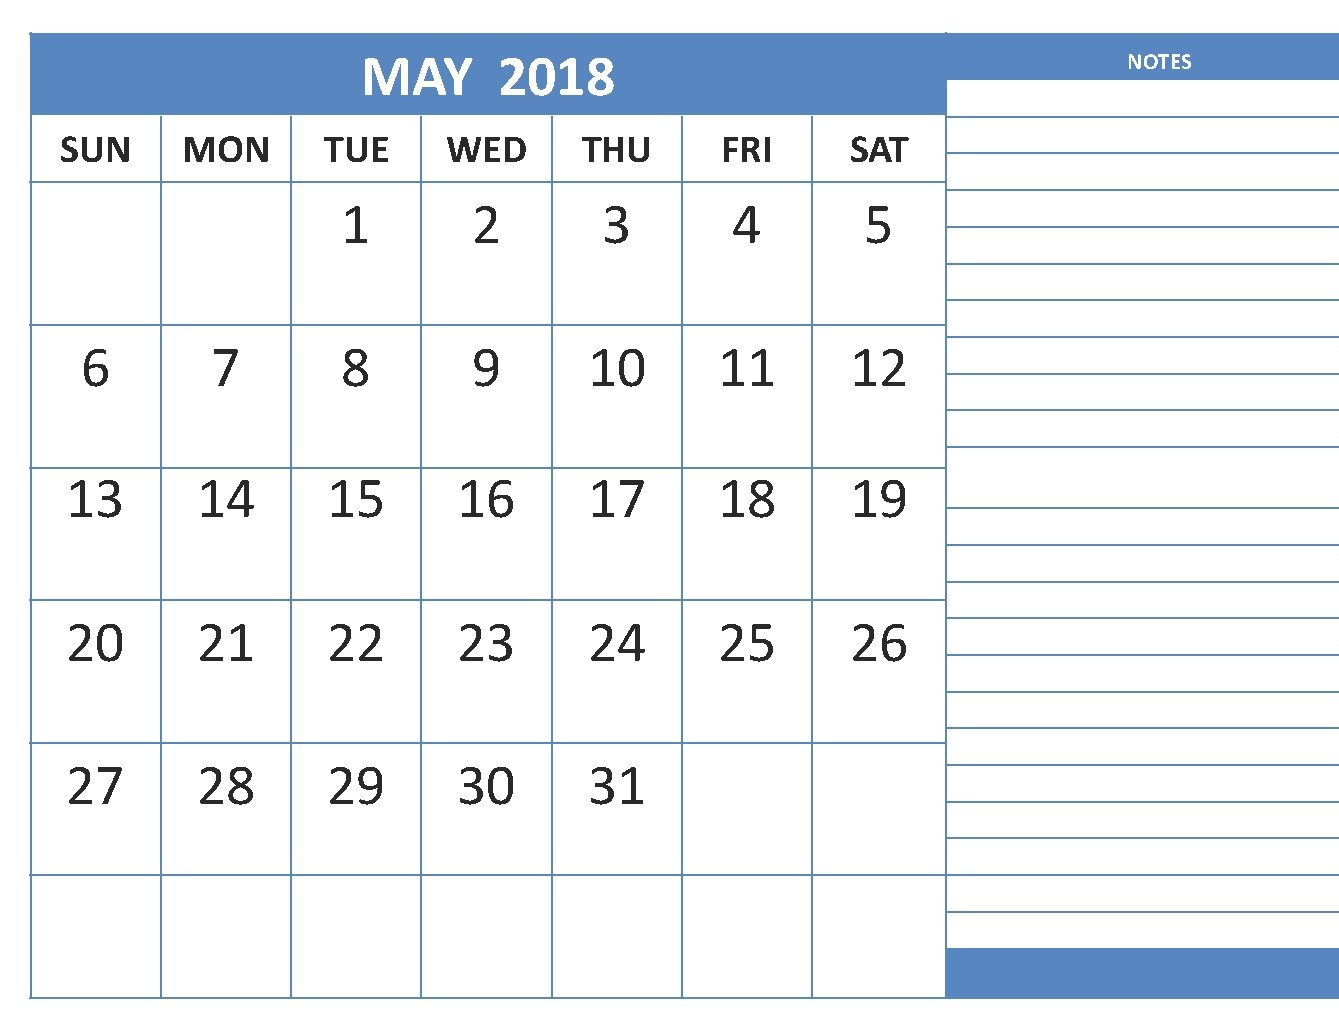 May 2018 Landscape Calendar with Notes